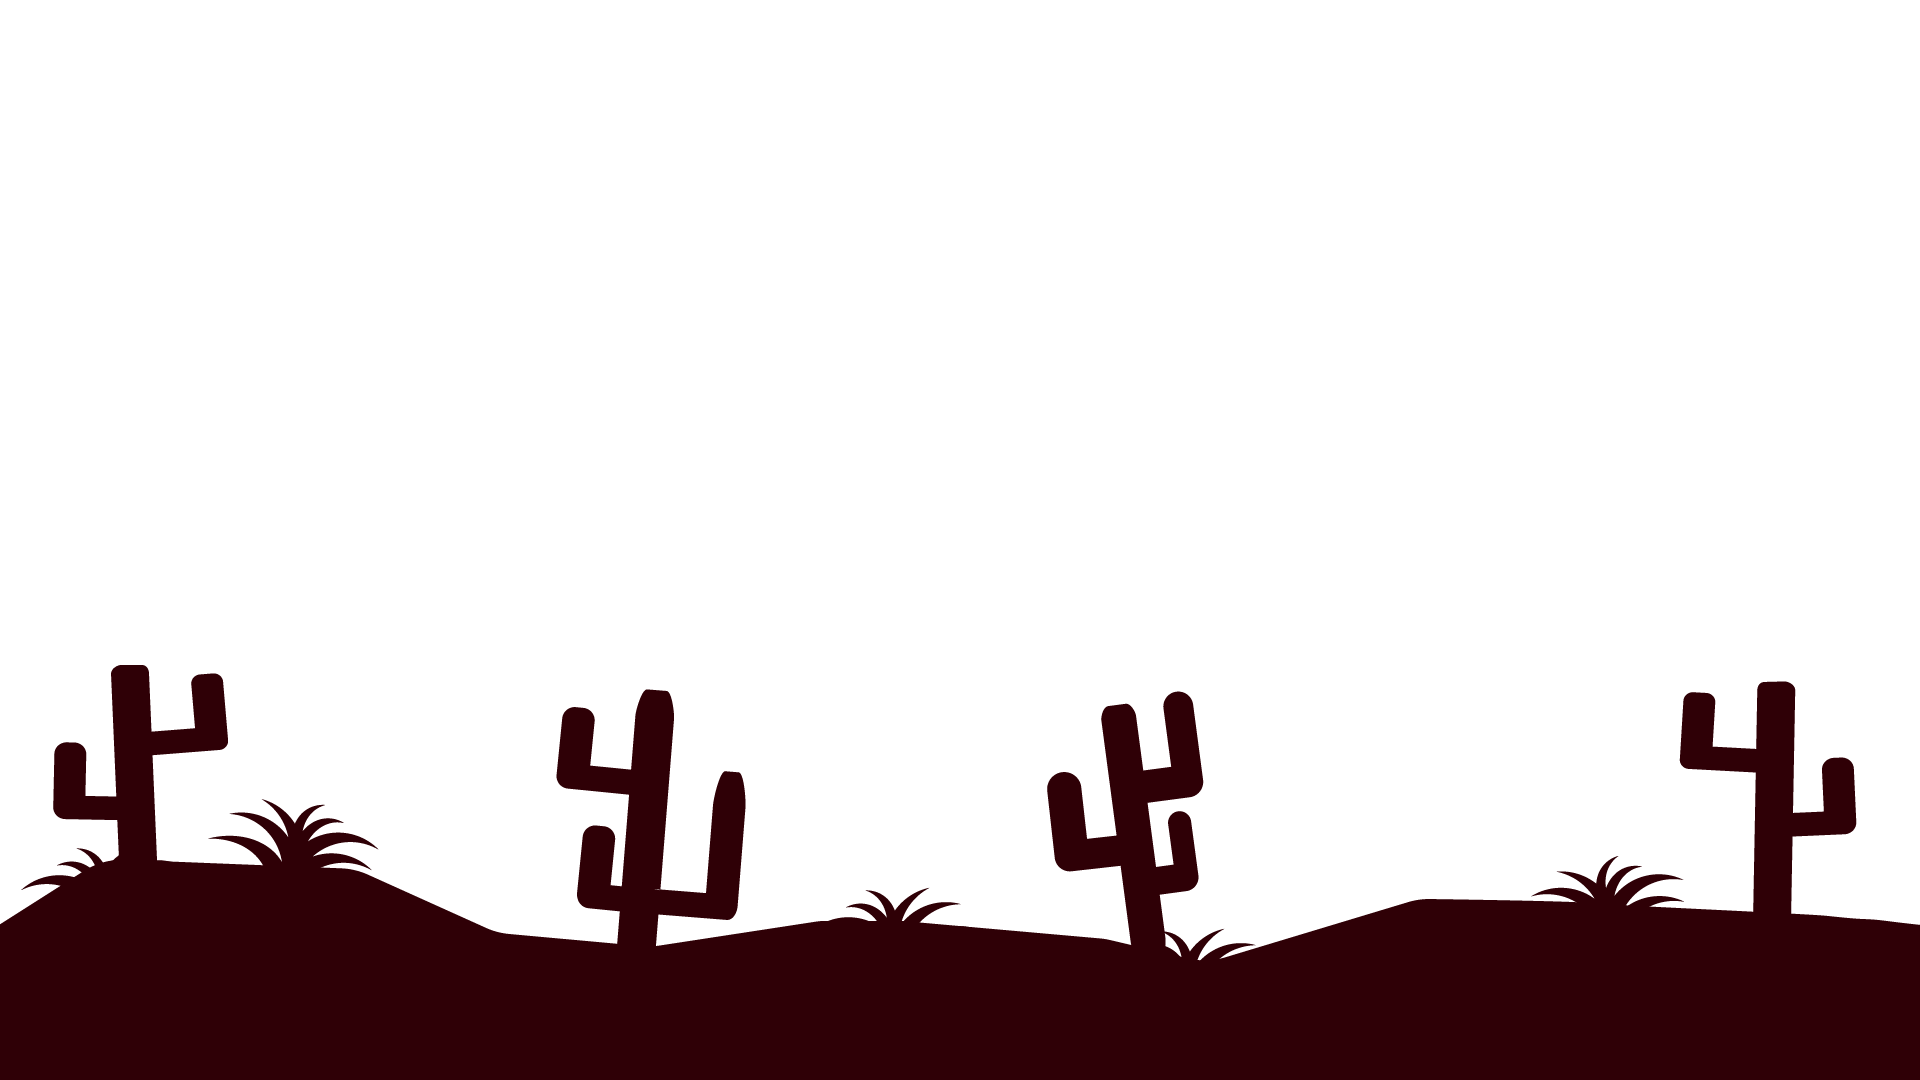 Desert silhouette png. Parallax background by cryptogene